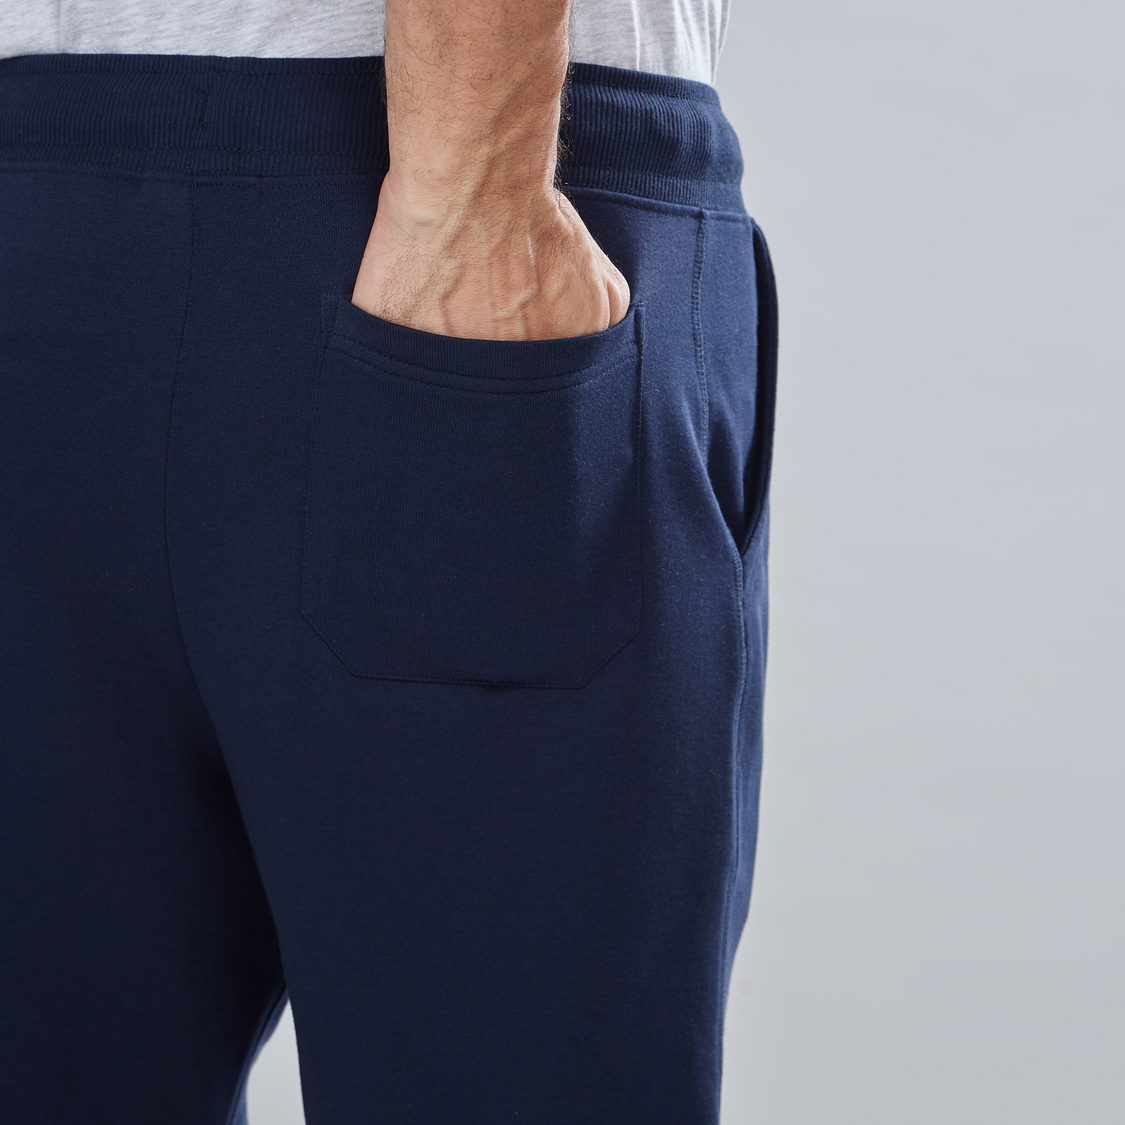 Pocket Detail Shorts with Elasticised Waistband and Drawstring